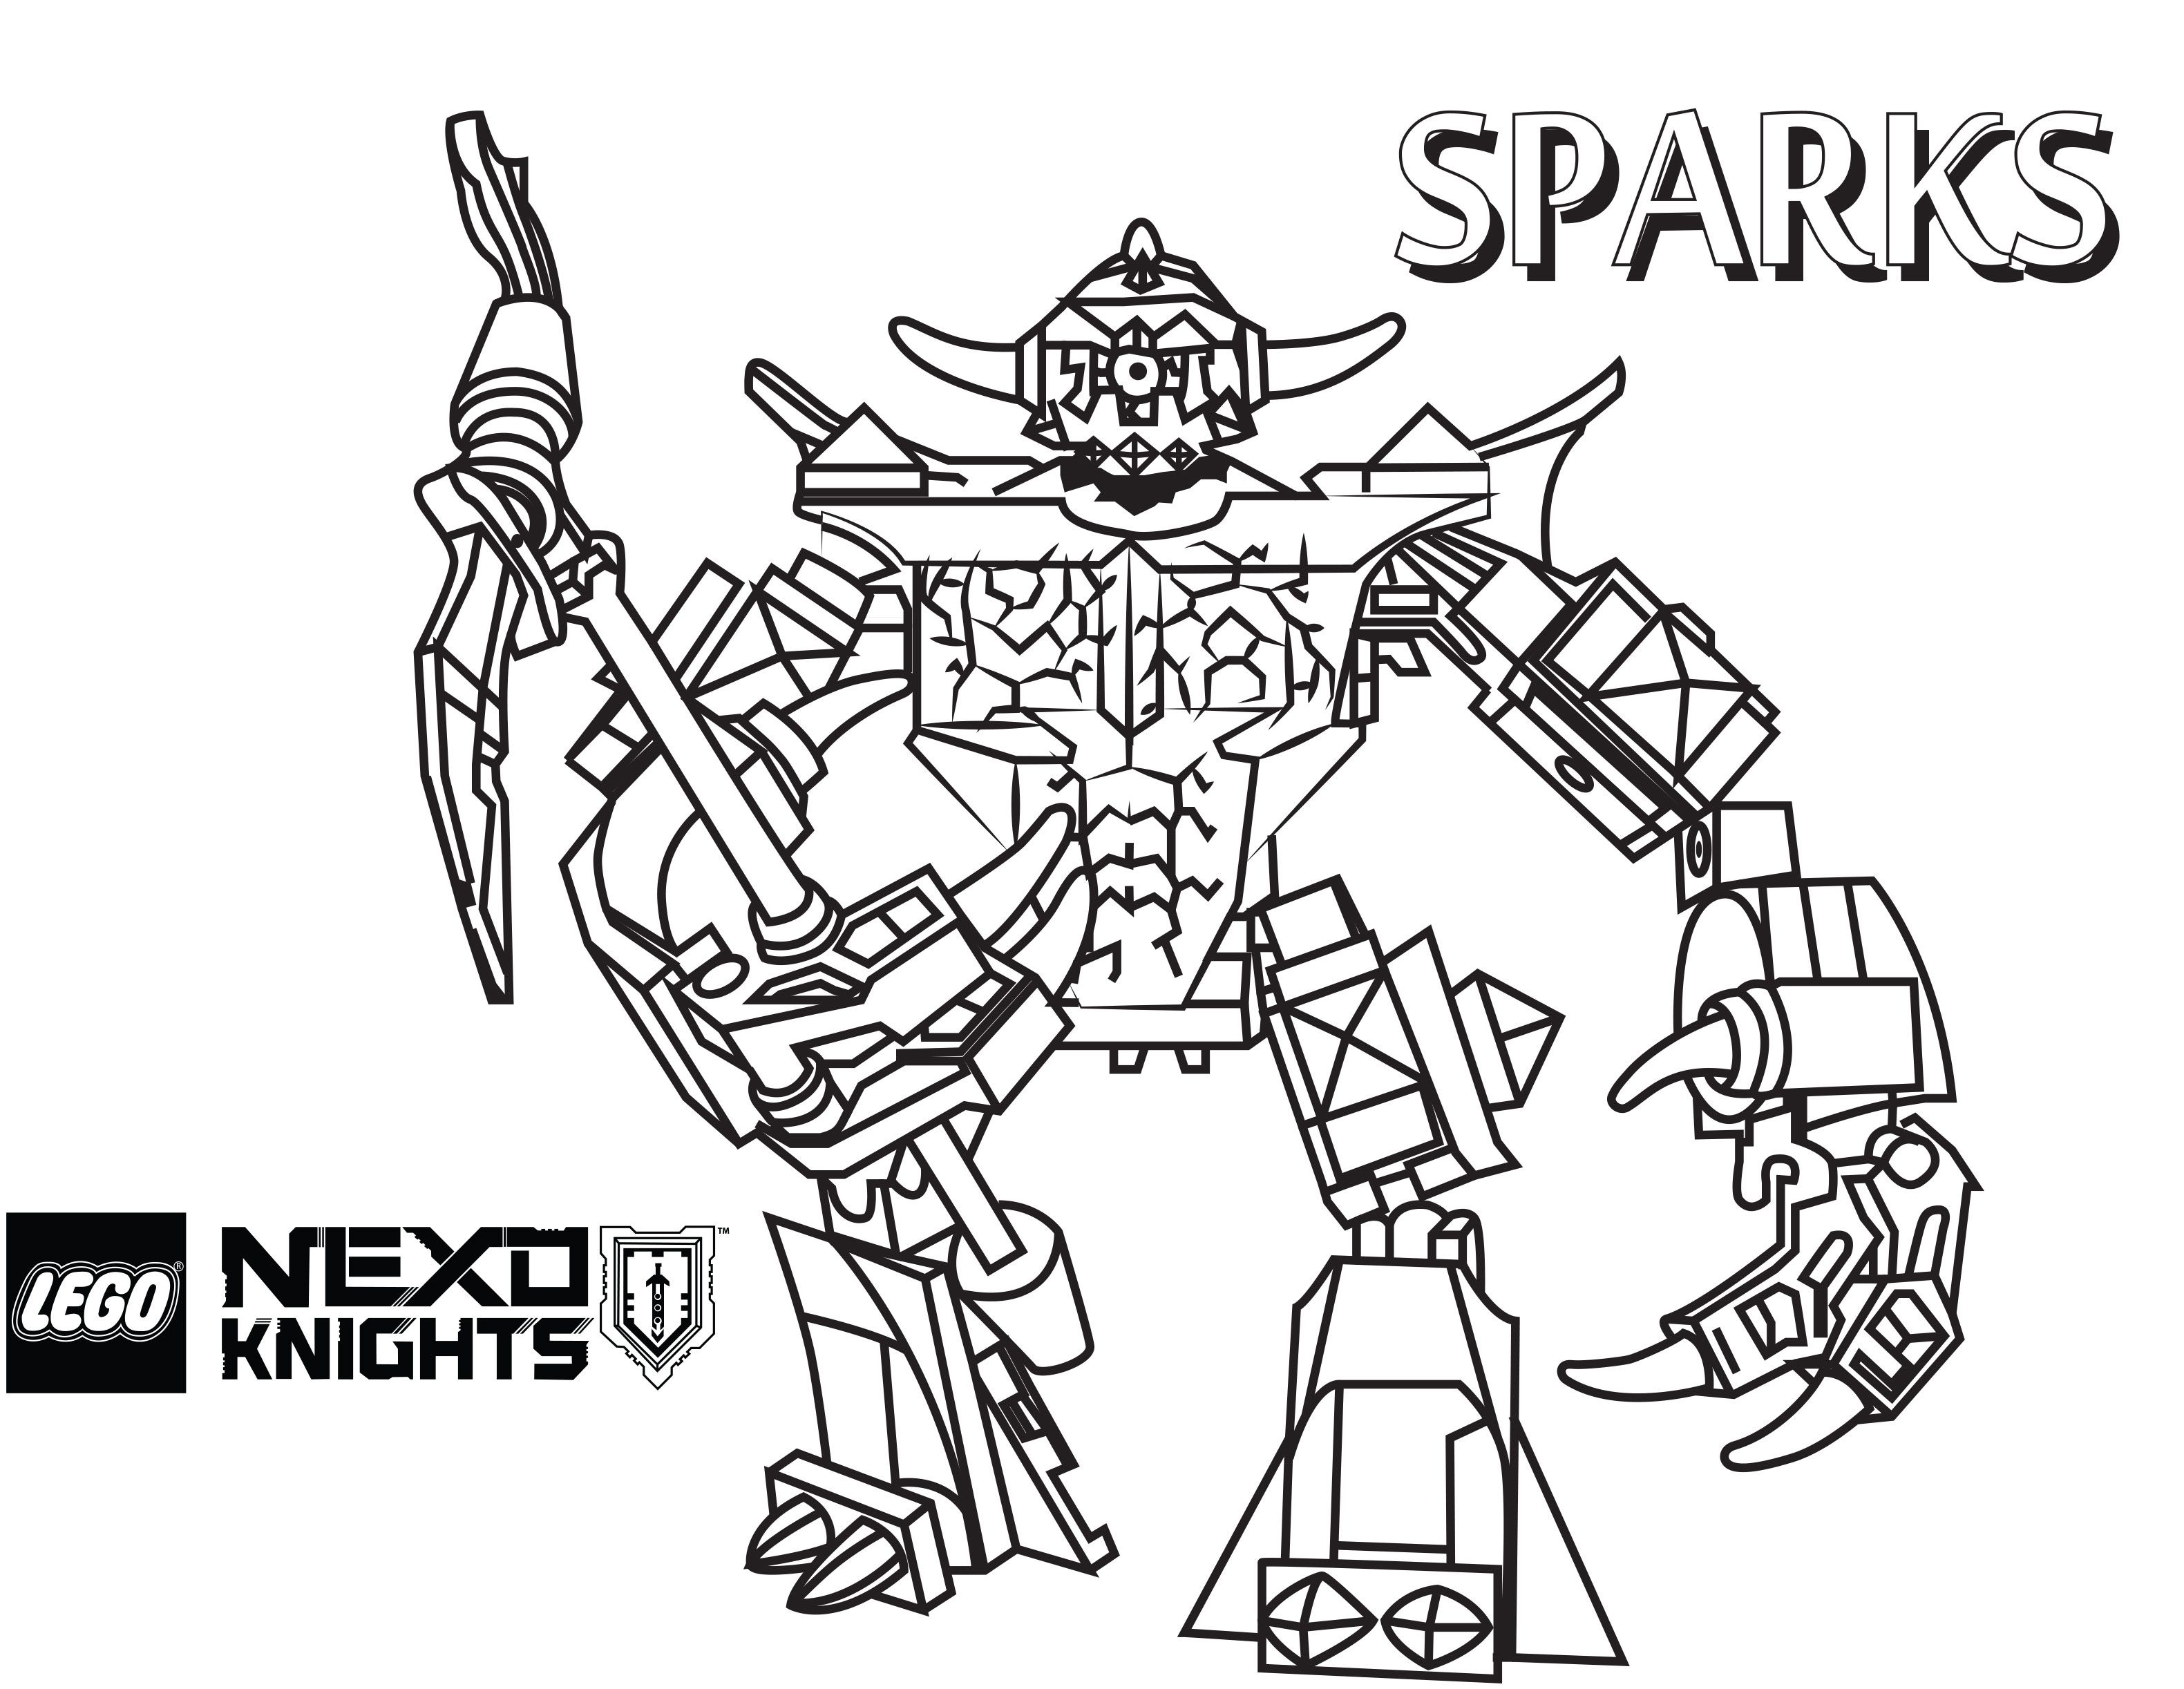 Nexo Lego Knights Coloring Pages Sketch Coloring Page Coloriage Halloween Coloriage Dessin A Colorier